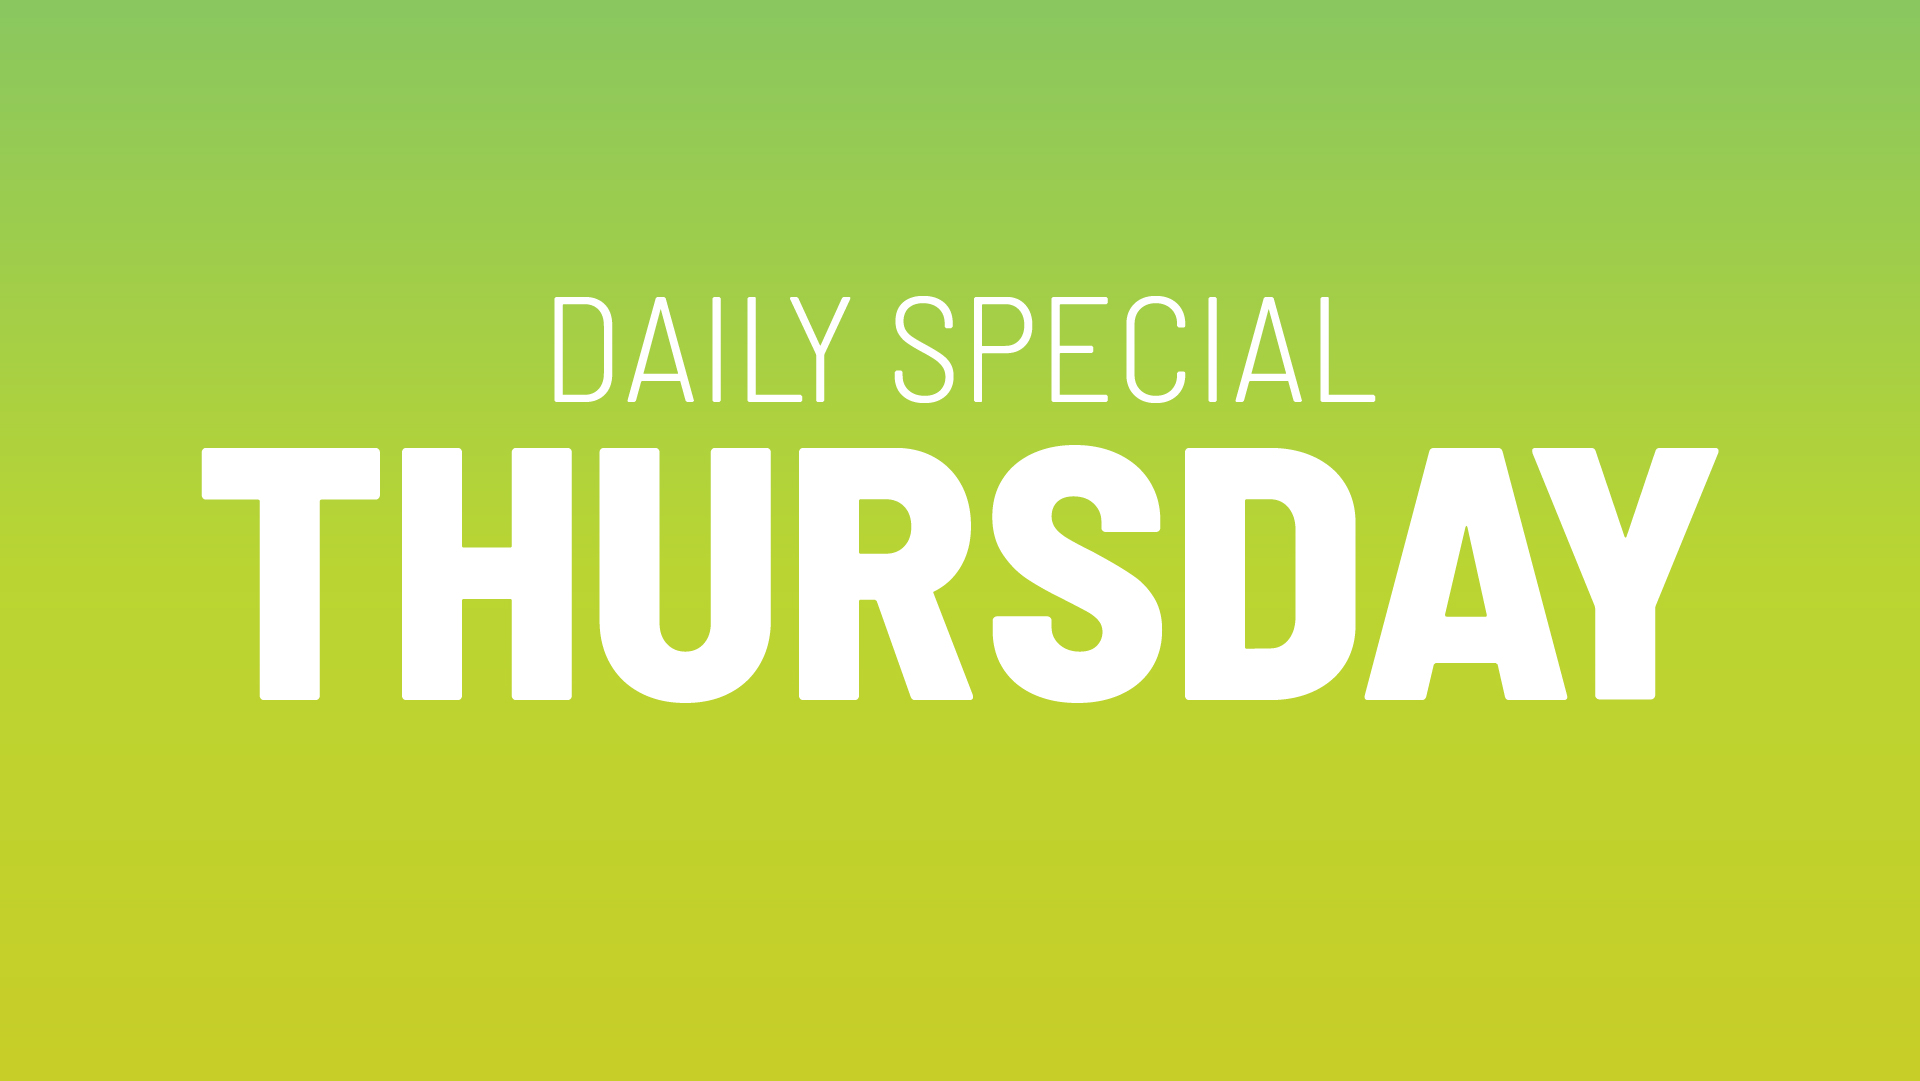 Thursday's Daily Special